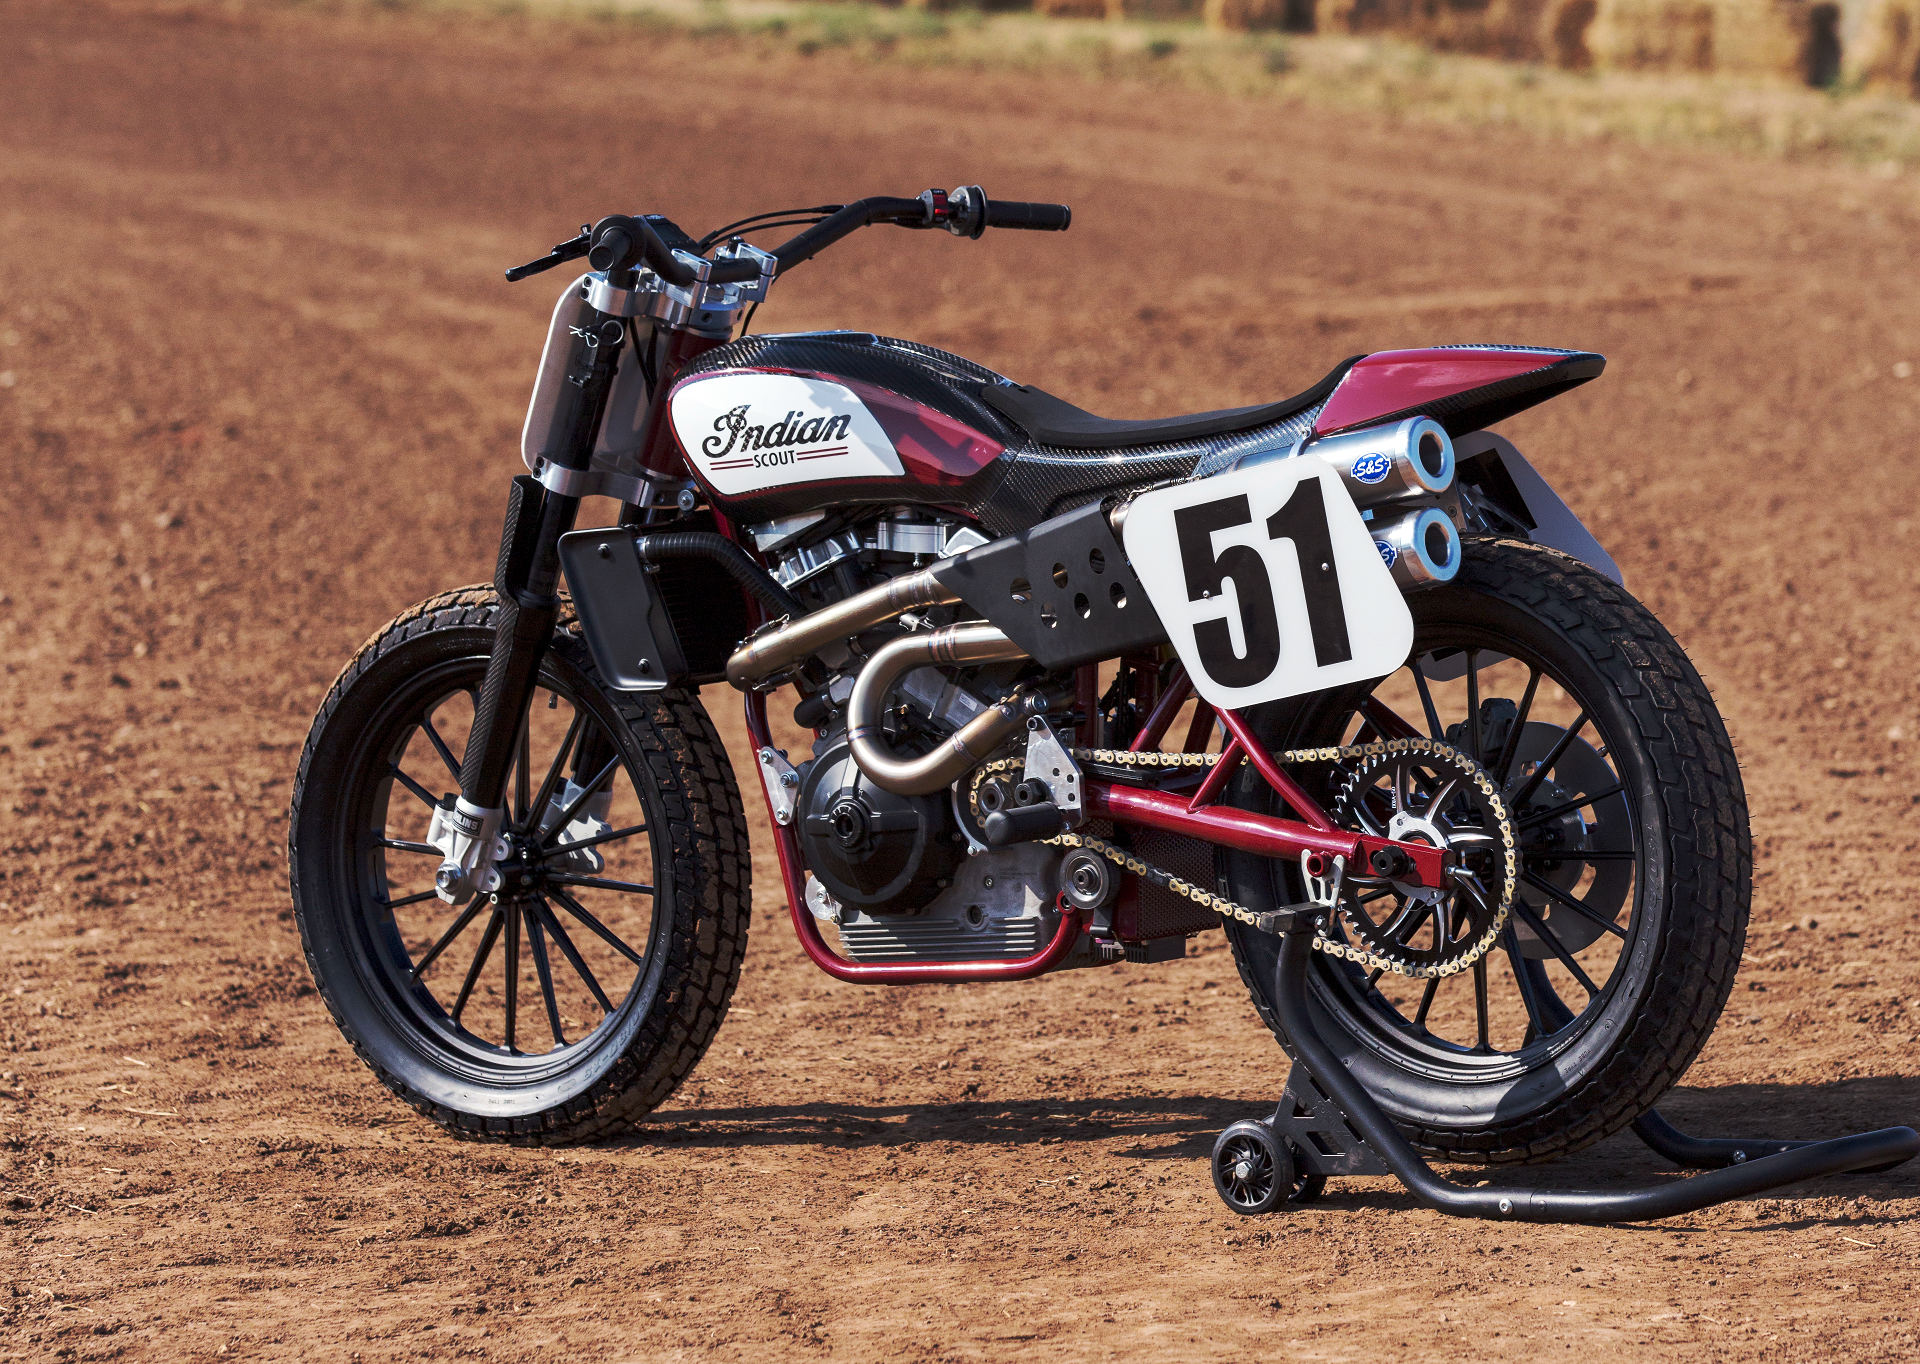 Indian Inauspiciously Debuts Ftr750 Dirt Track Racer As